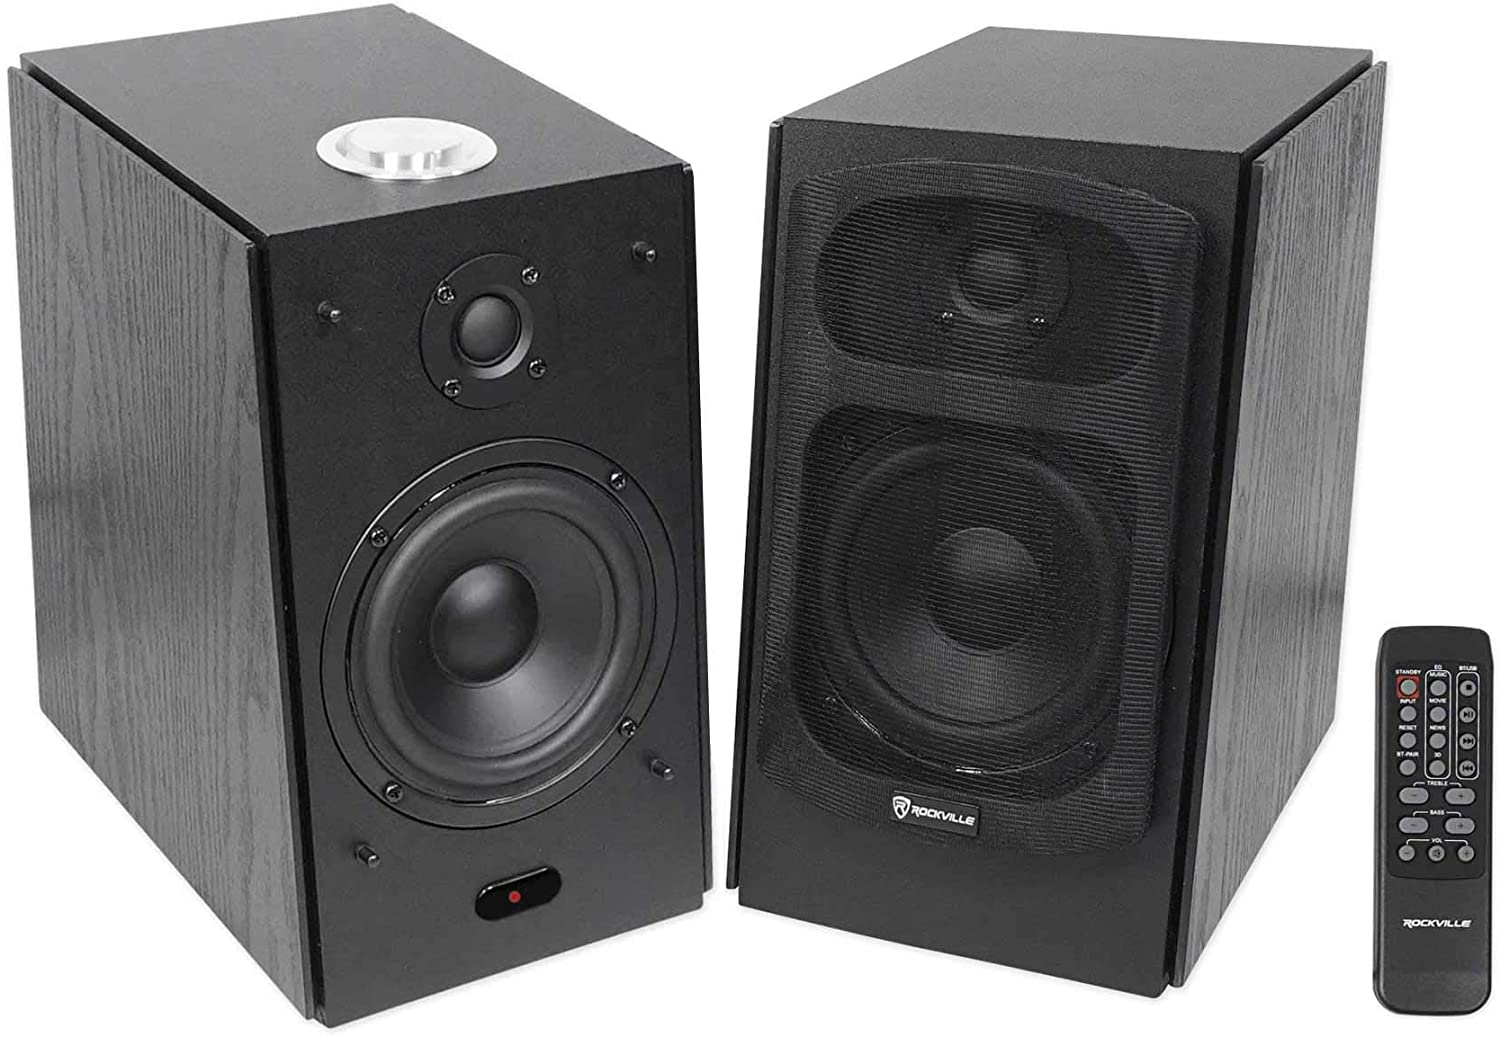 (2) Speaker Home Theater System for Sony X690E Television TV - in Black 71KxyeKwx1LSL1500_